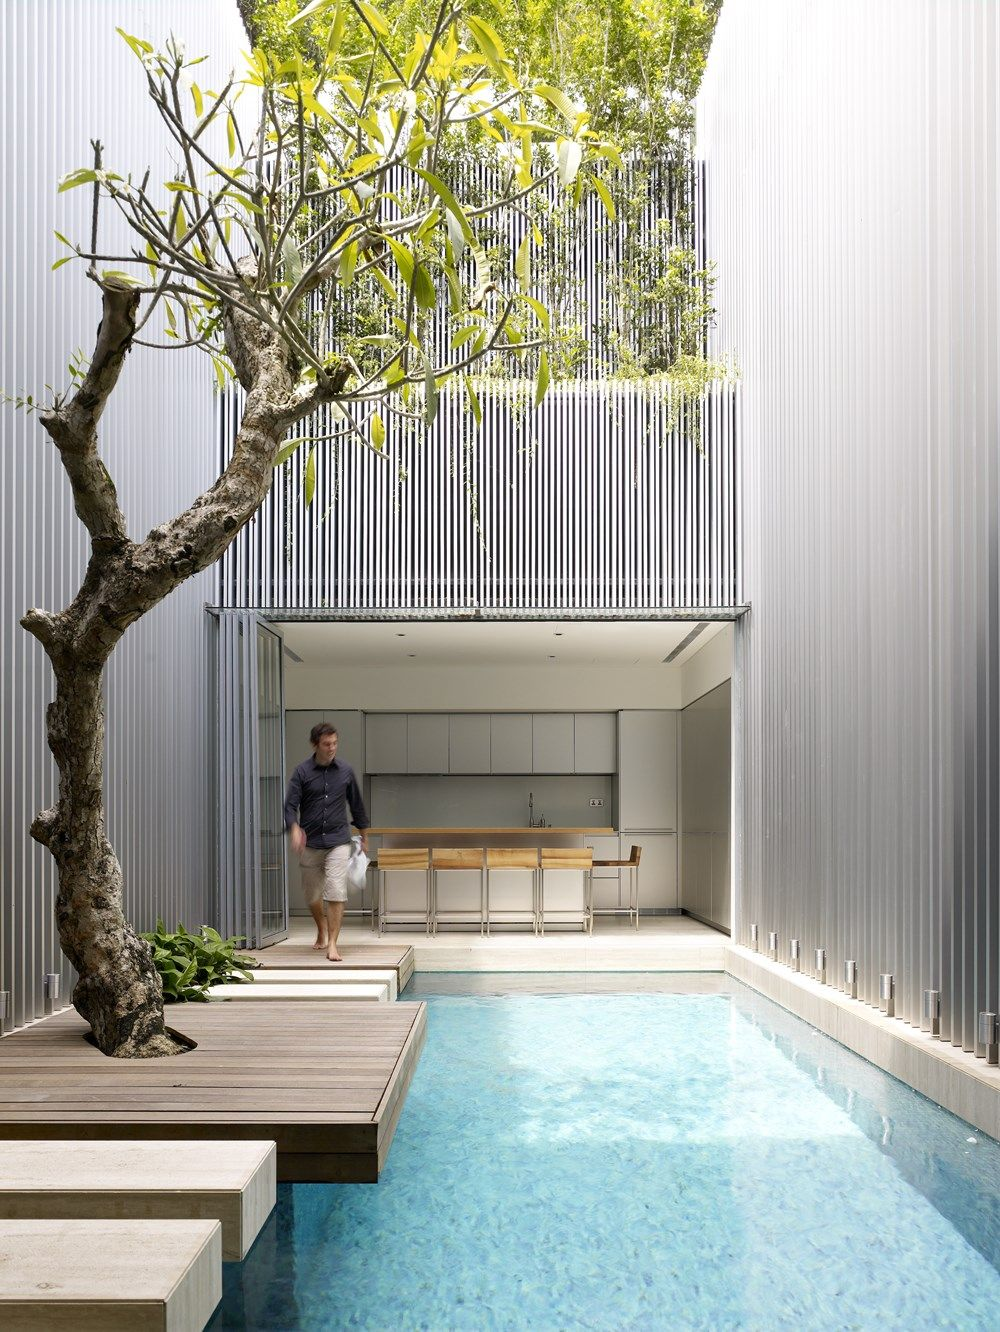 blair road by ong  also best places to live images on pinterest home ideas facades rh